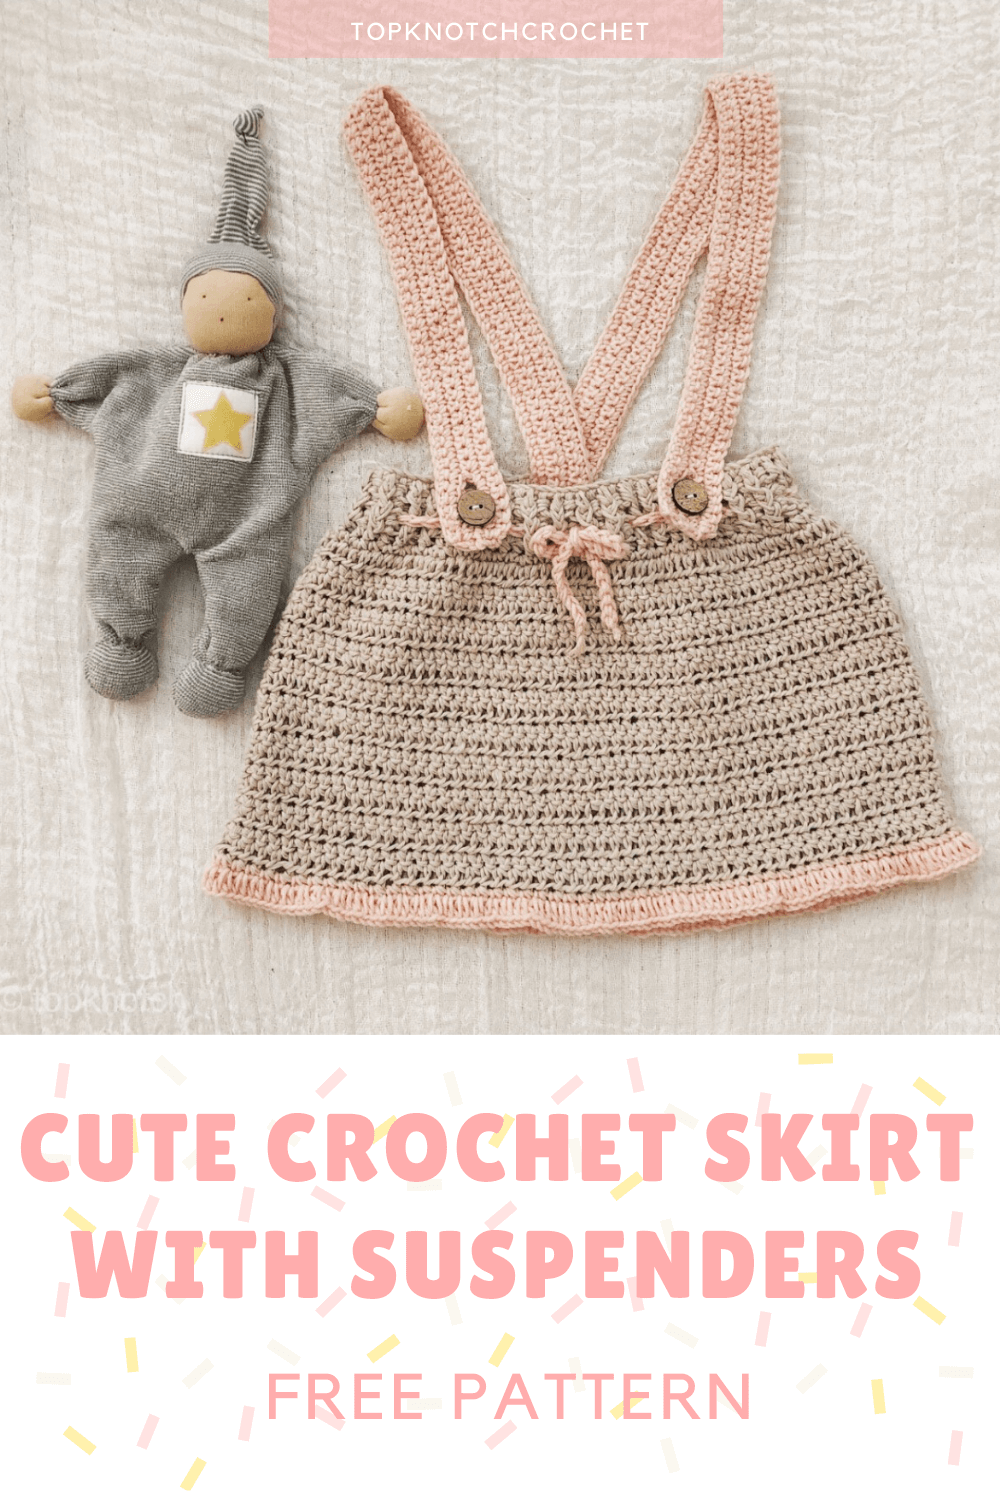 Crochet Skirt with Suspenders- Free Pattern.